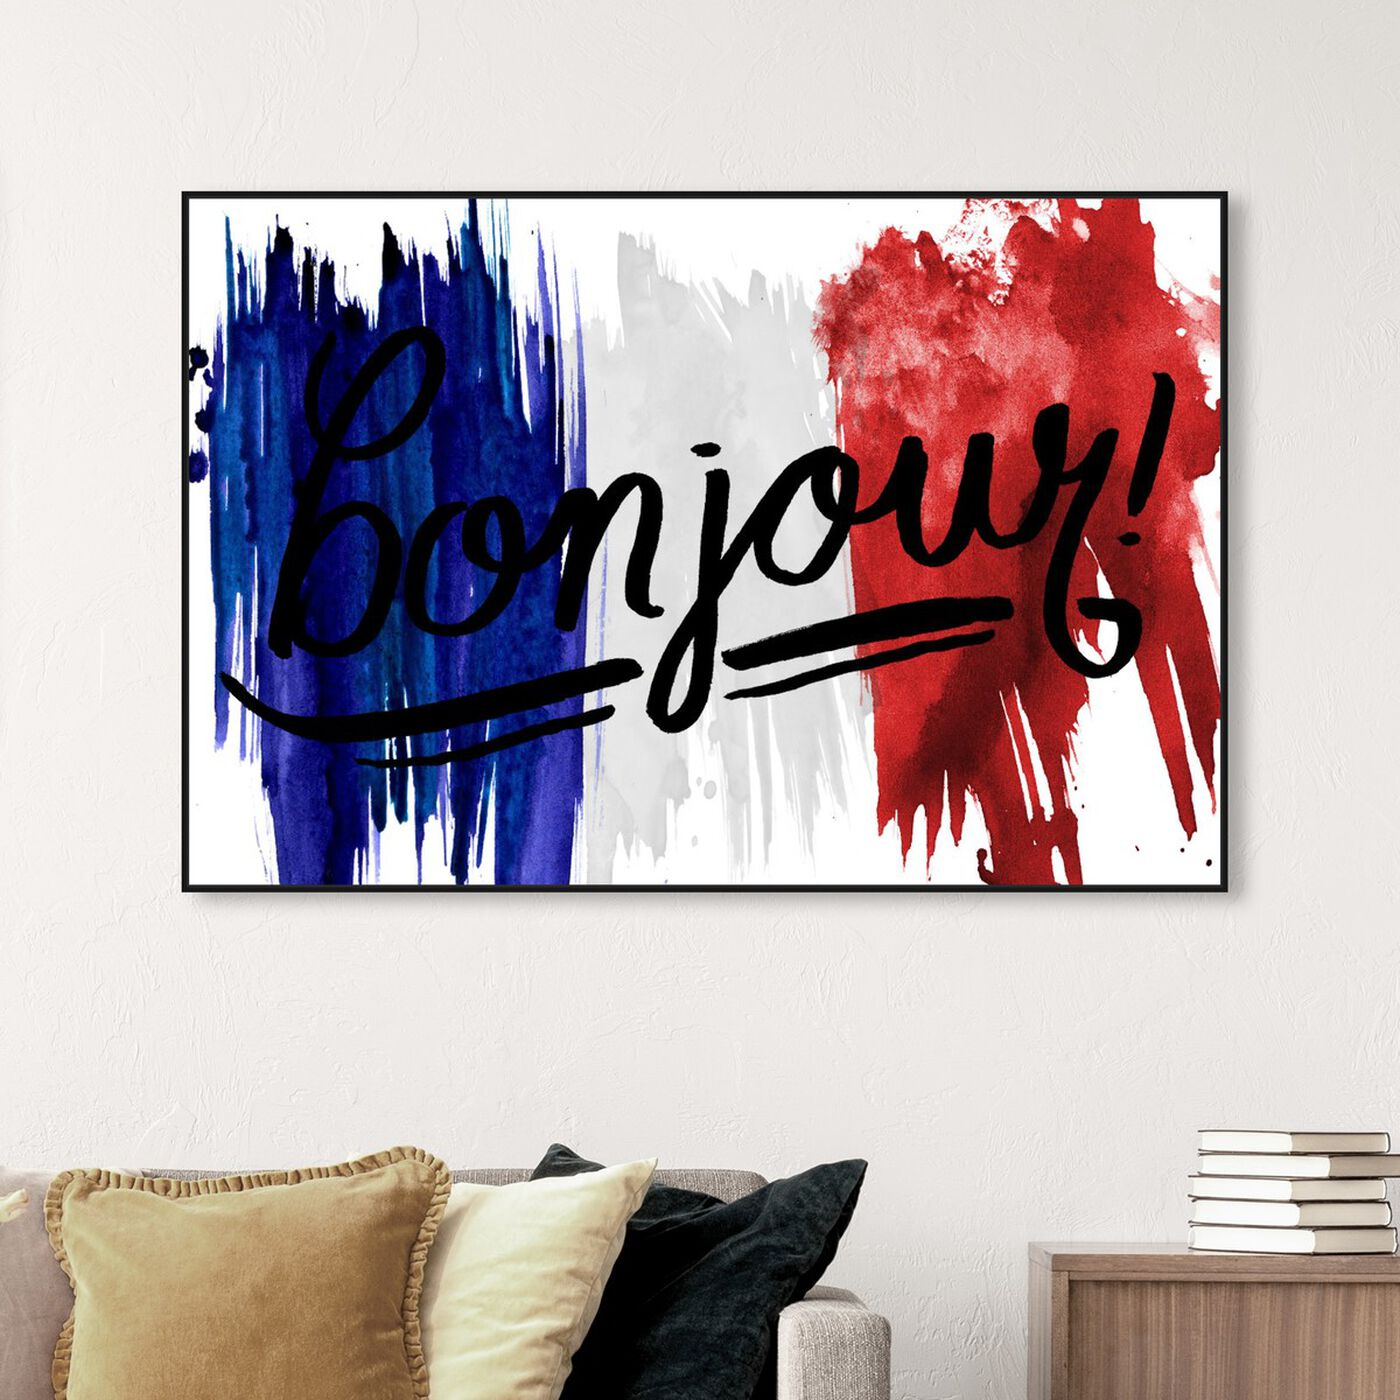 Hanging view of Bonjour Paris featuring typography and quotes and travel quotes and sayings art.